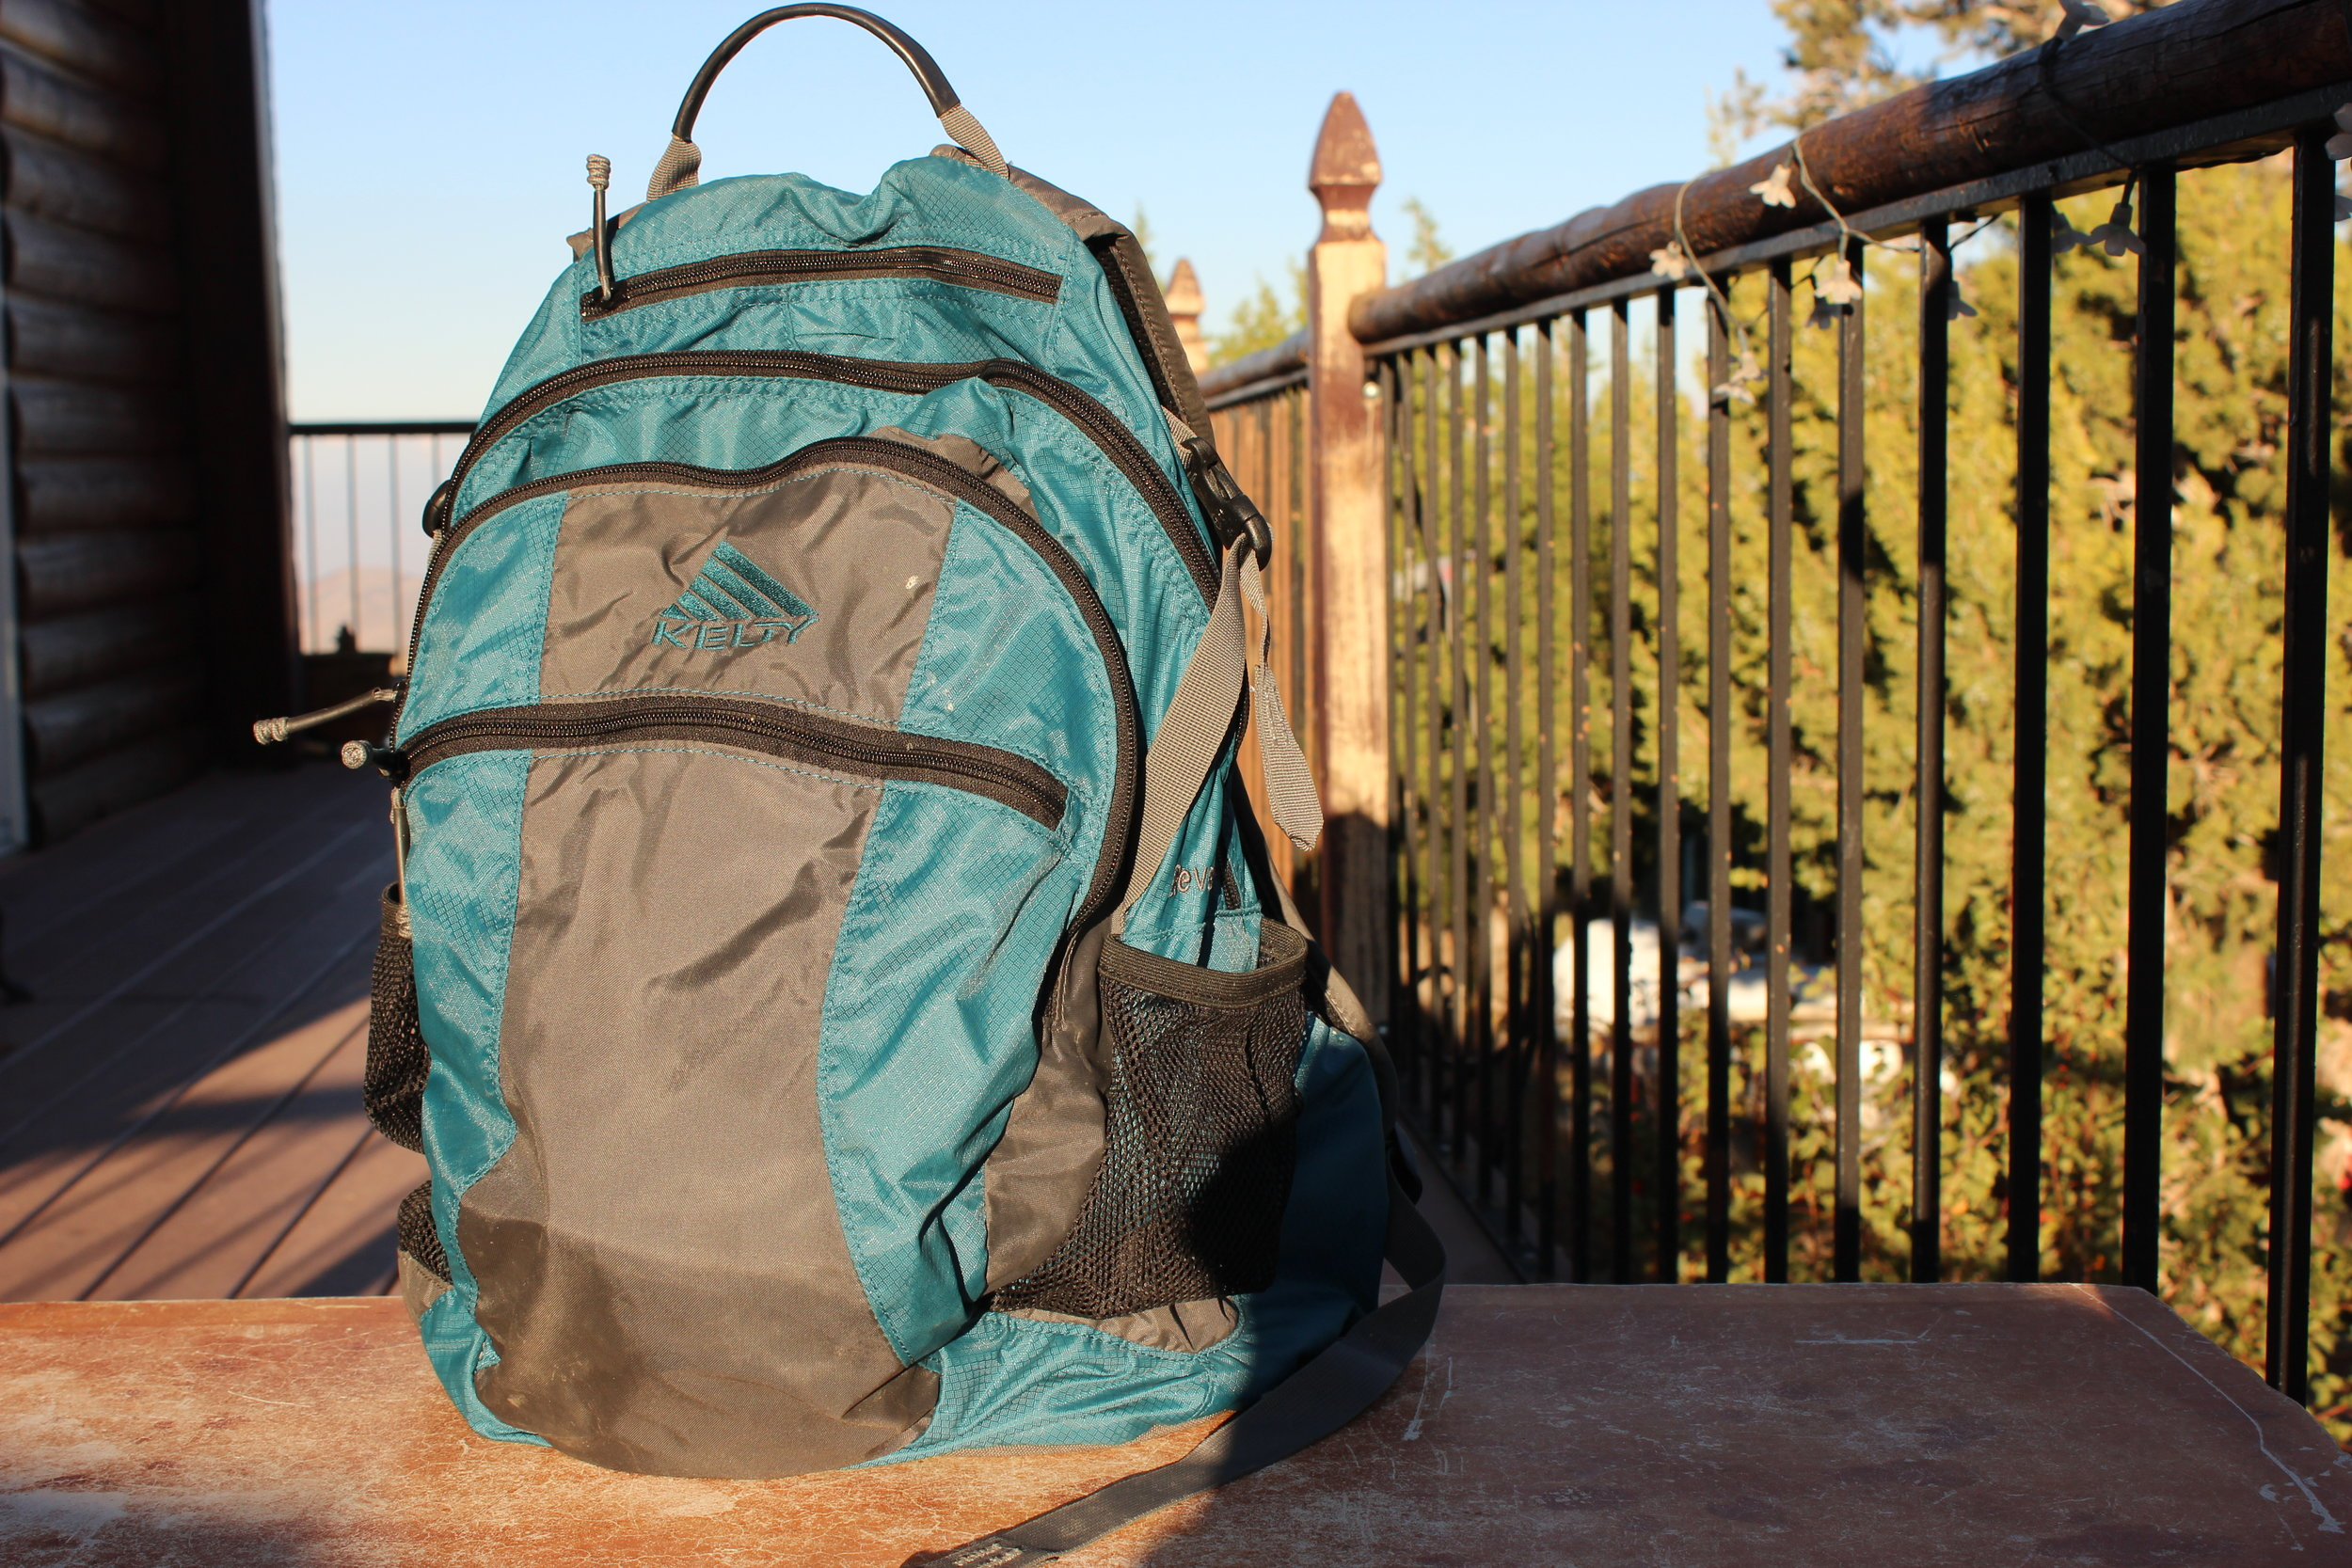 I've actually had this backpack for years. It's been tried and truly tested on some long, good trails, so I think it will do just fine for this. Here is a  similar backpack.  Another option is the  Alice packs  that were discontinued by the military. You can find these on Amazon too!